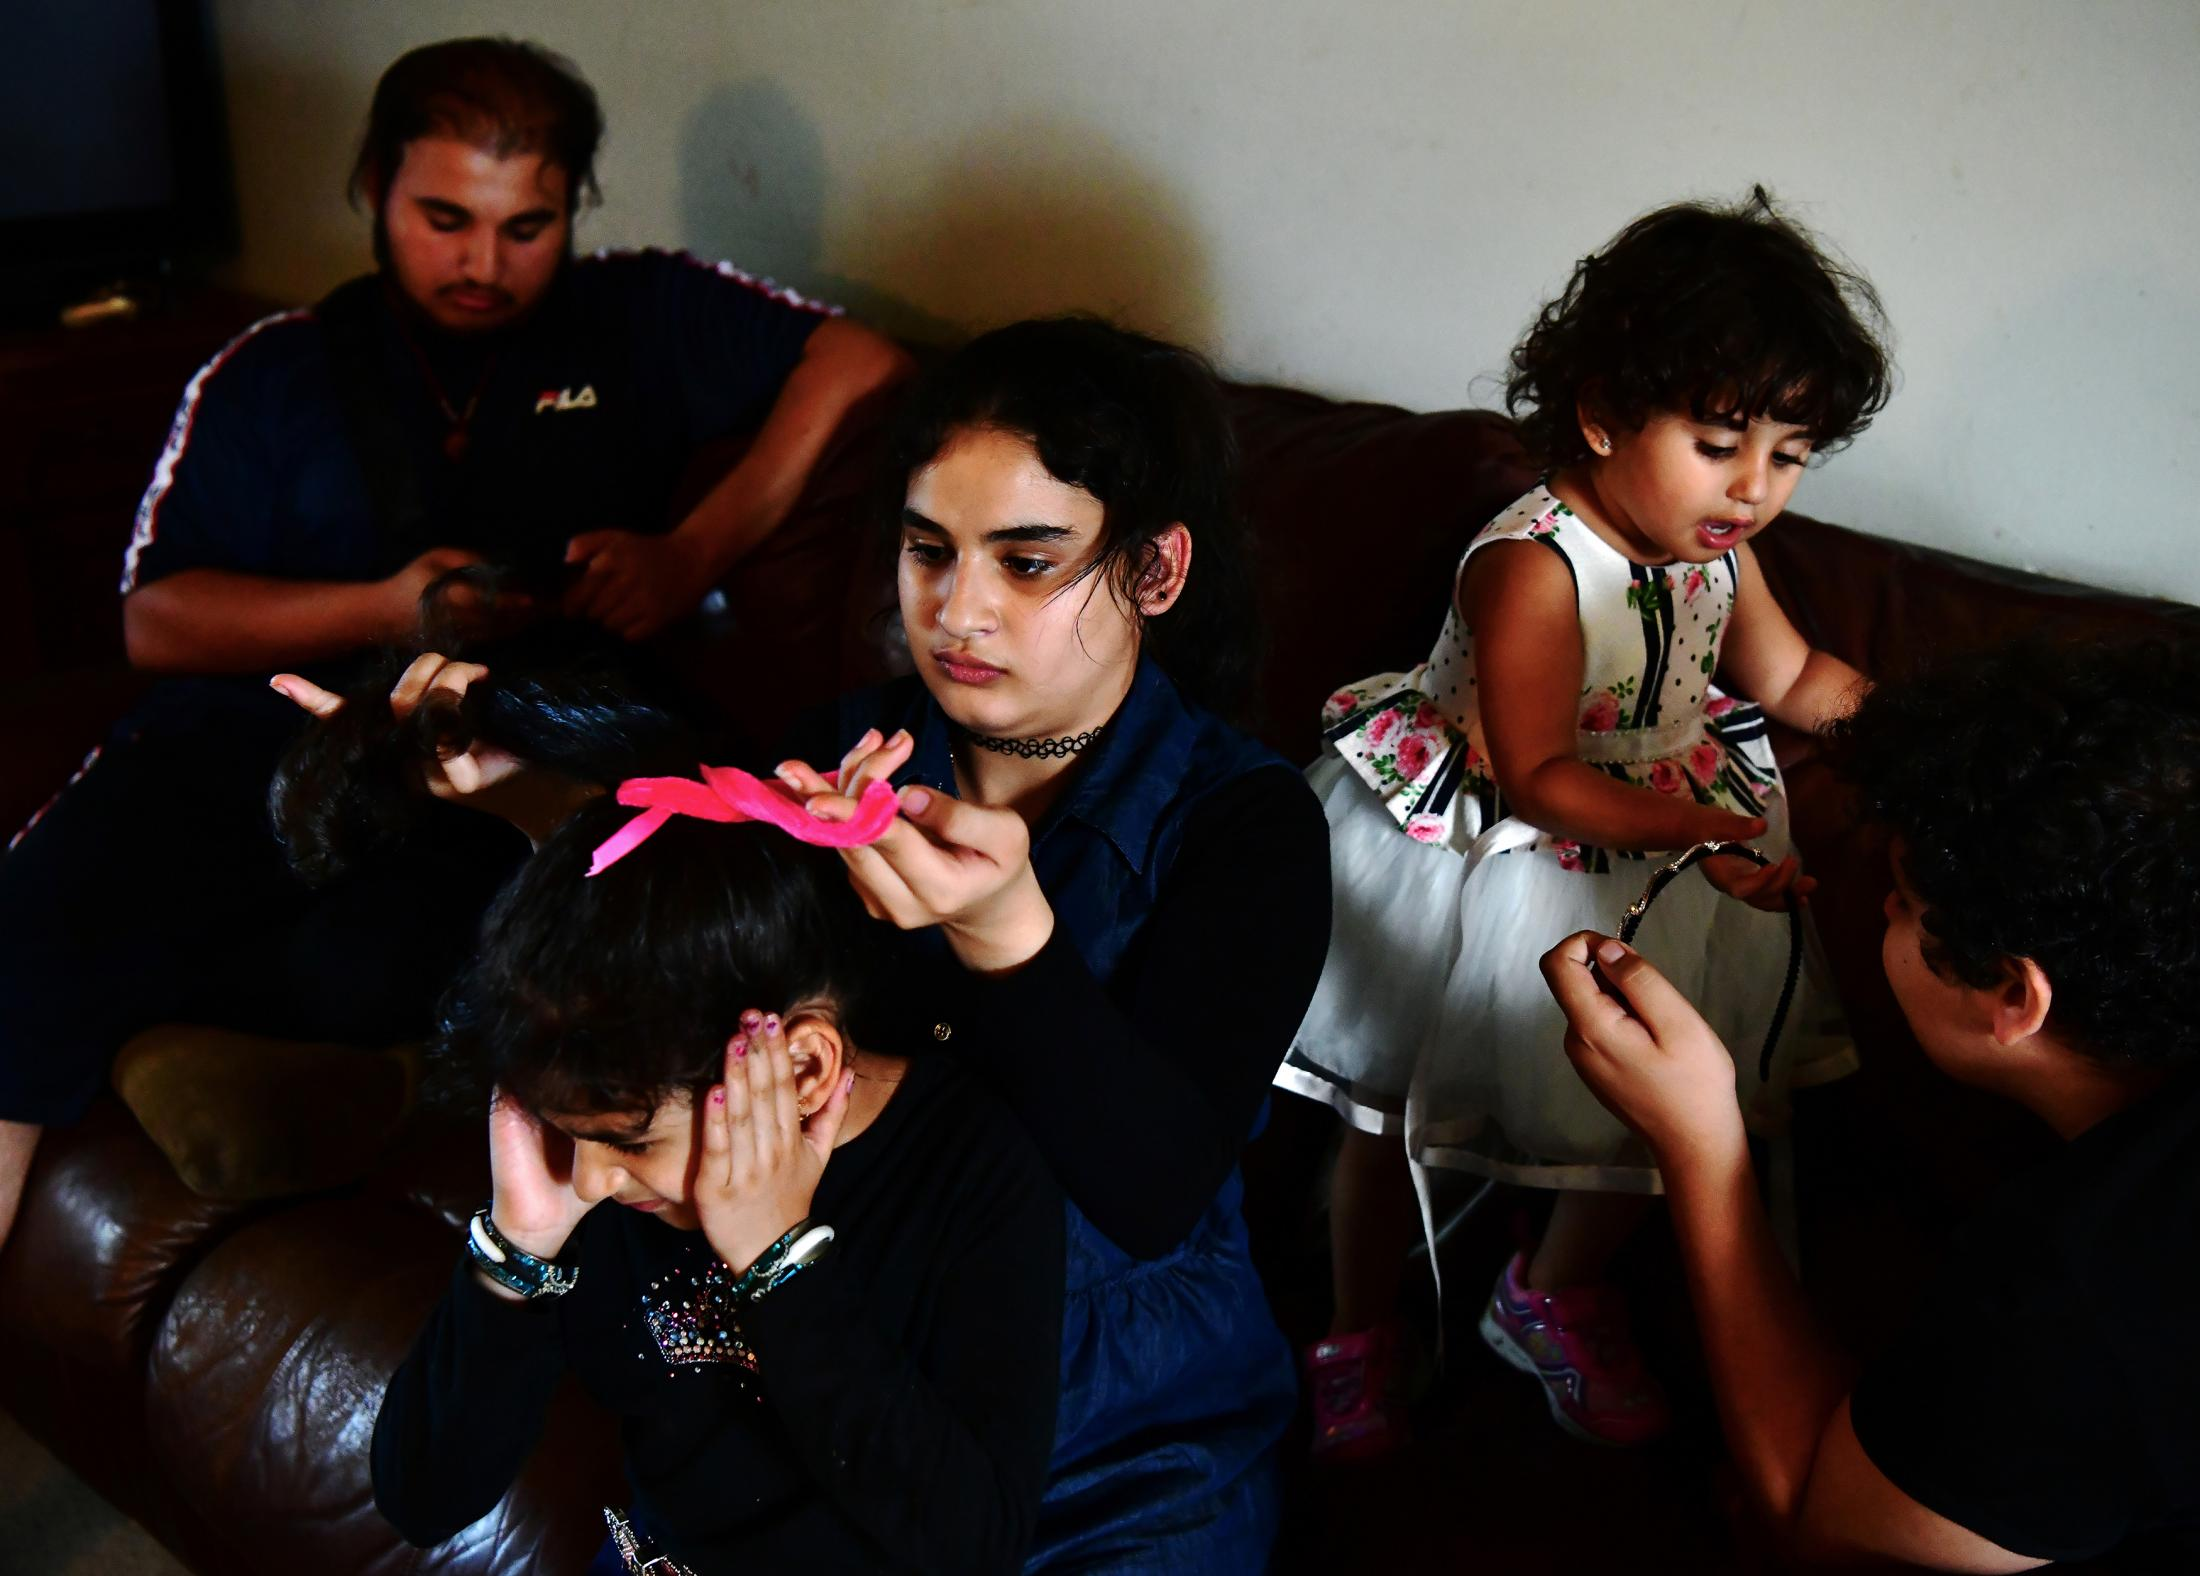 Narjes Al Hraishawi, 14, ties her younger sister's, Fatima's, hair Asinat, right, 2, tries to grab her headband from her older brother, Ali, 12. Abbas, left, 17, watches Youtube videos before driving two of the children to a carnival. The family's children range from 17 to a year and a half.